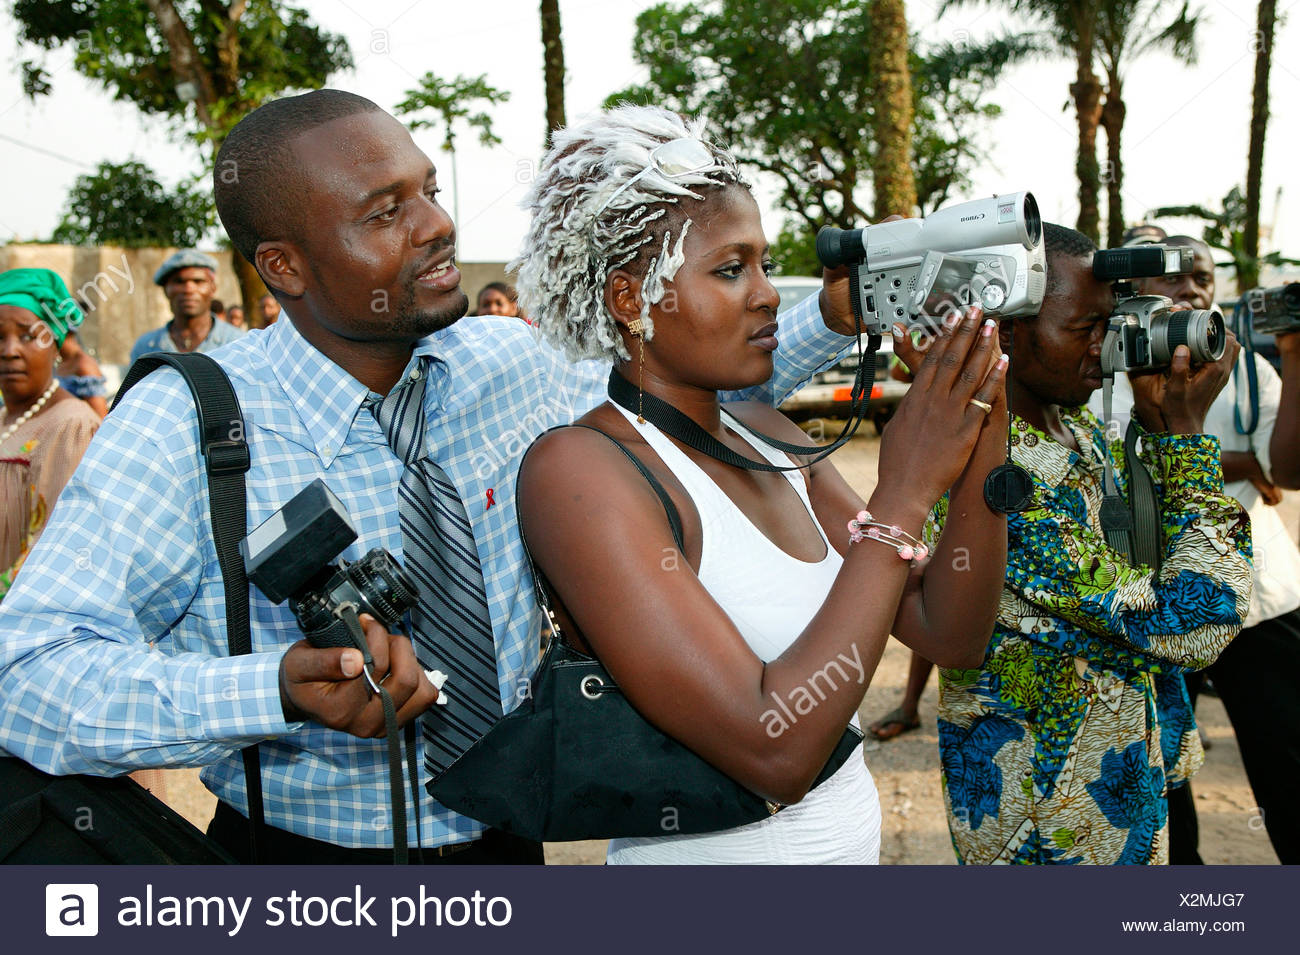 Photographer showing woman how to operate a video camera, Douala, Cameroon, Africa Stock Photo